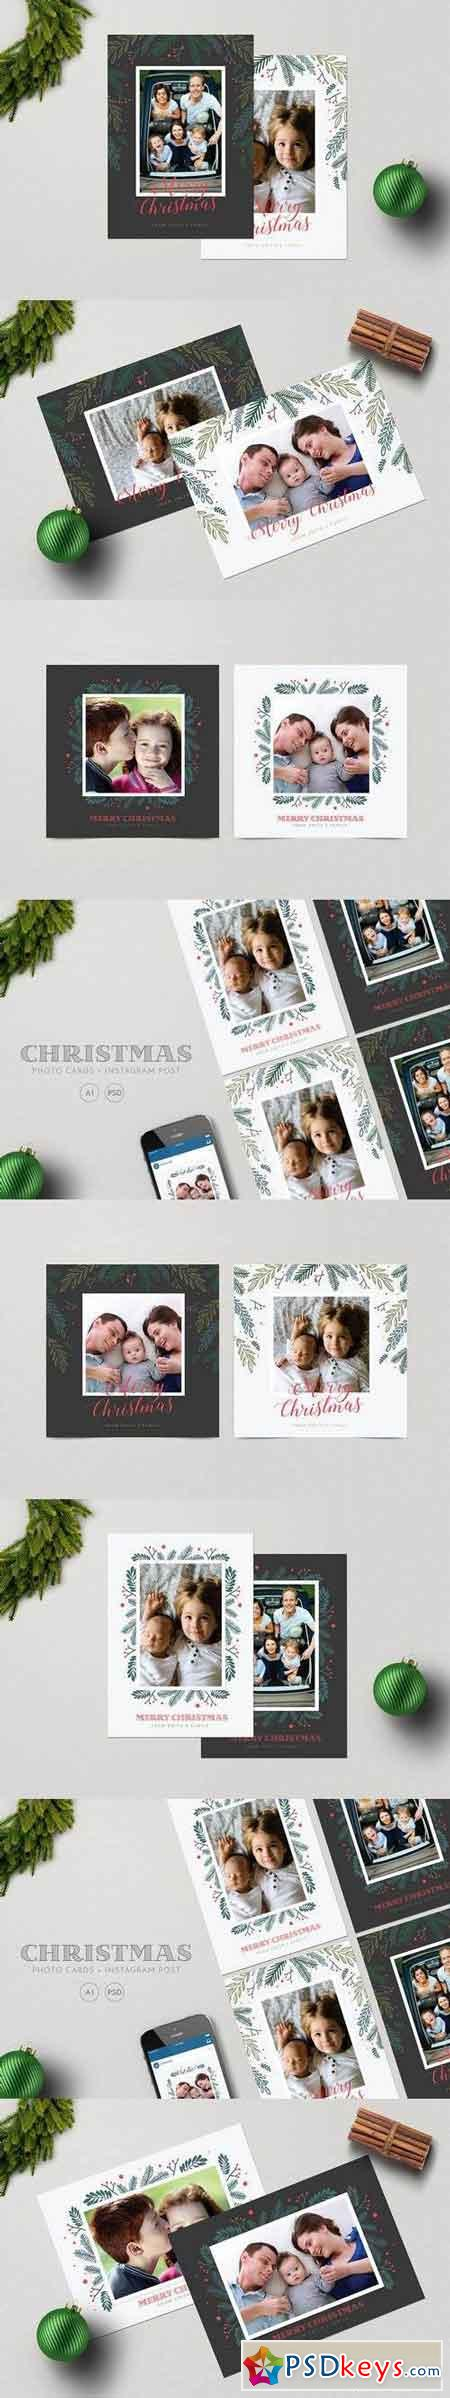 Christmas Photo Cards+ Instagram Post